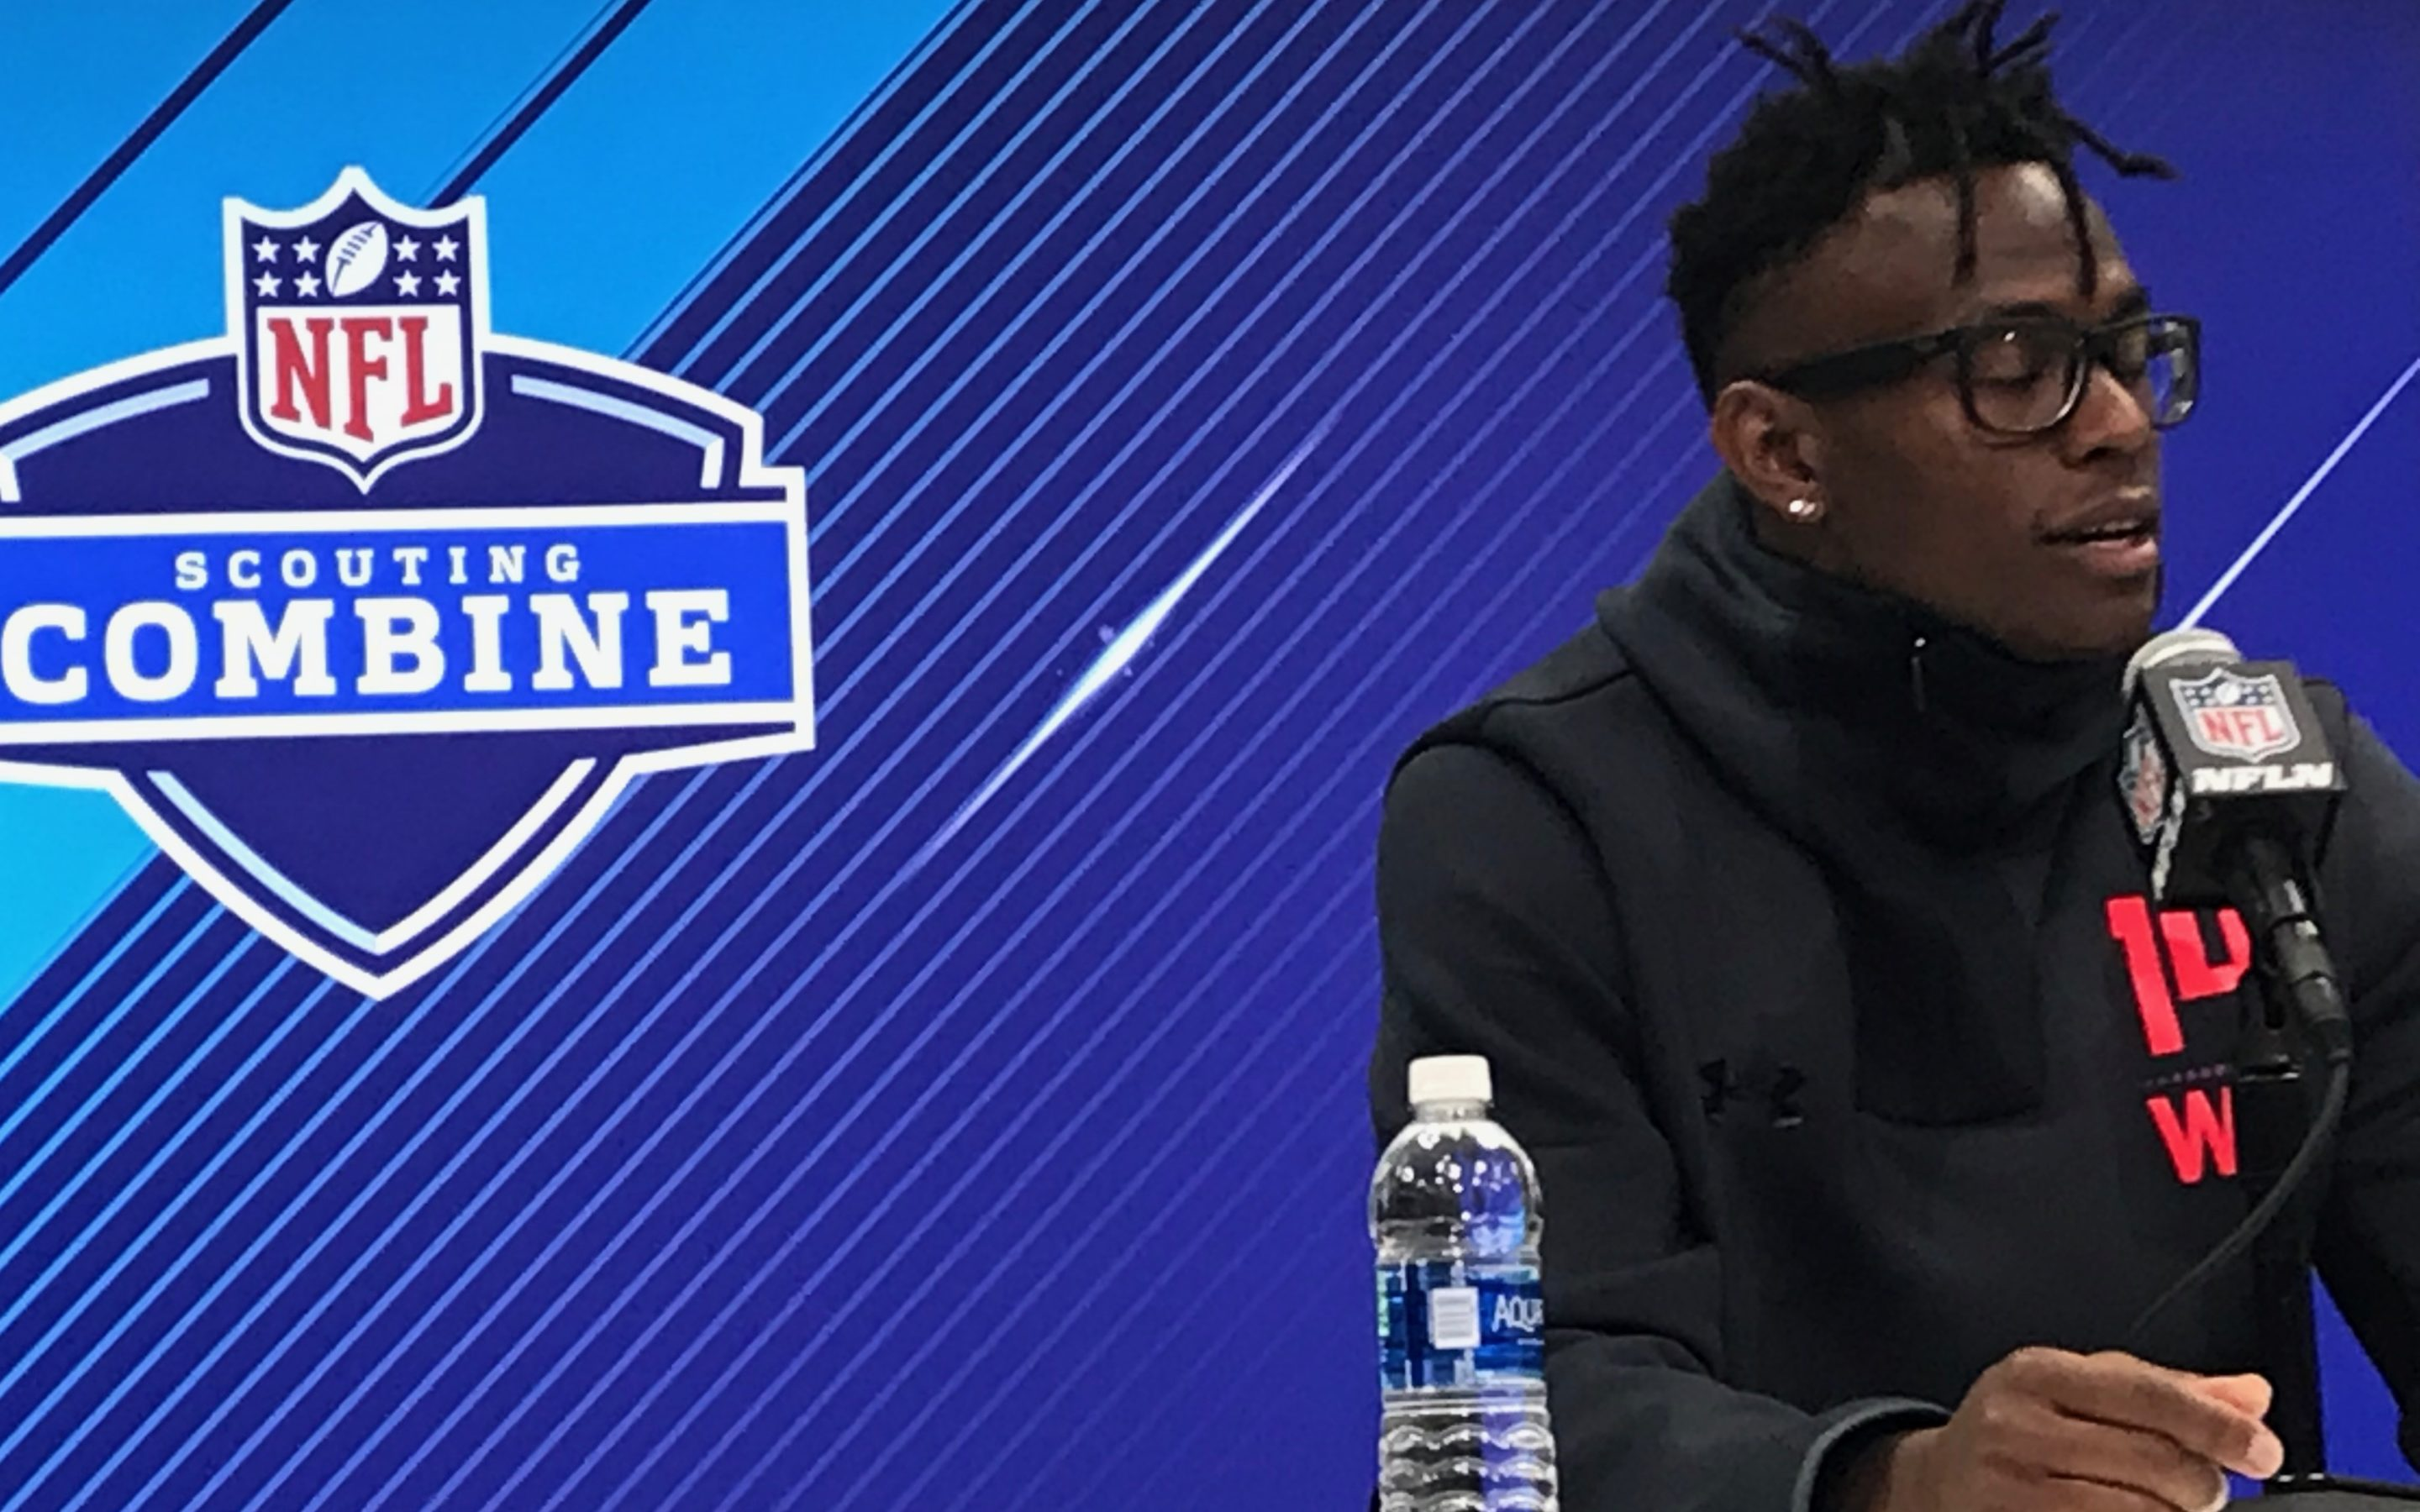 Quotes From The Combine: Day 2